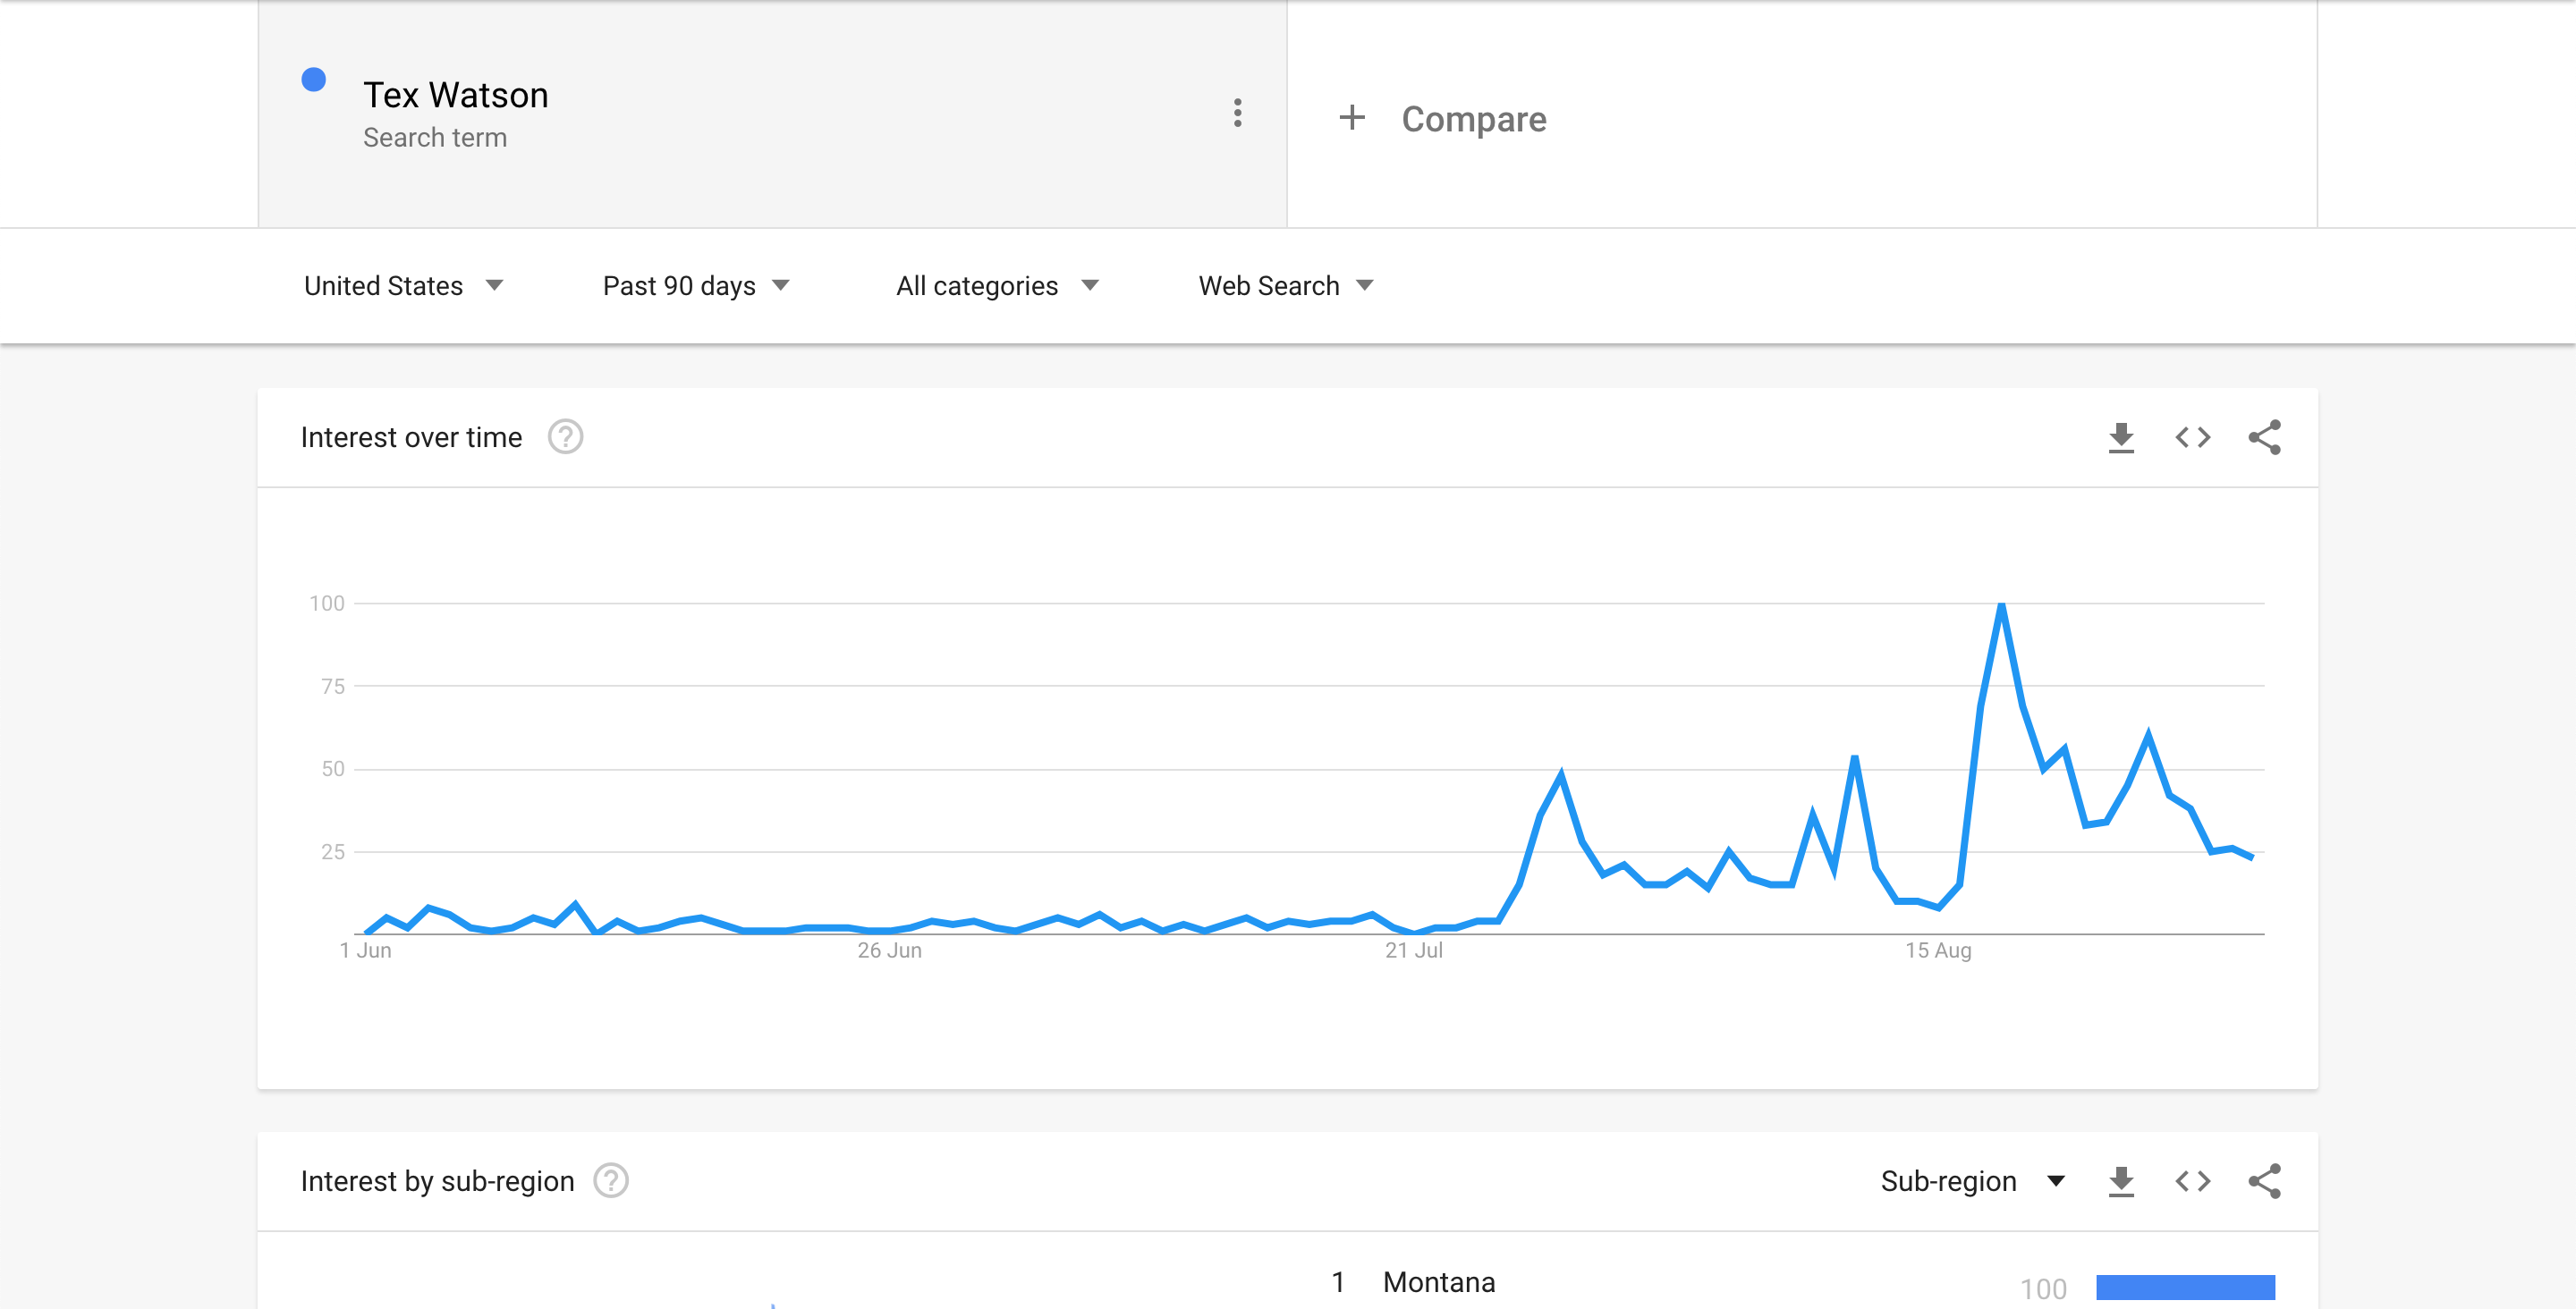 Tex Watson - Google Trends Screenshot